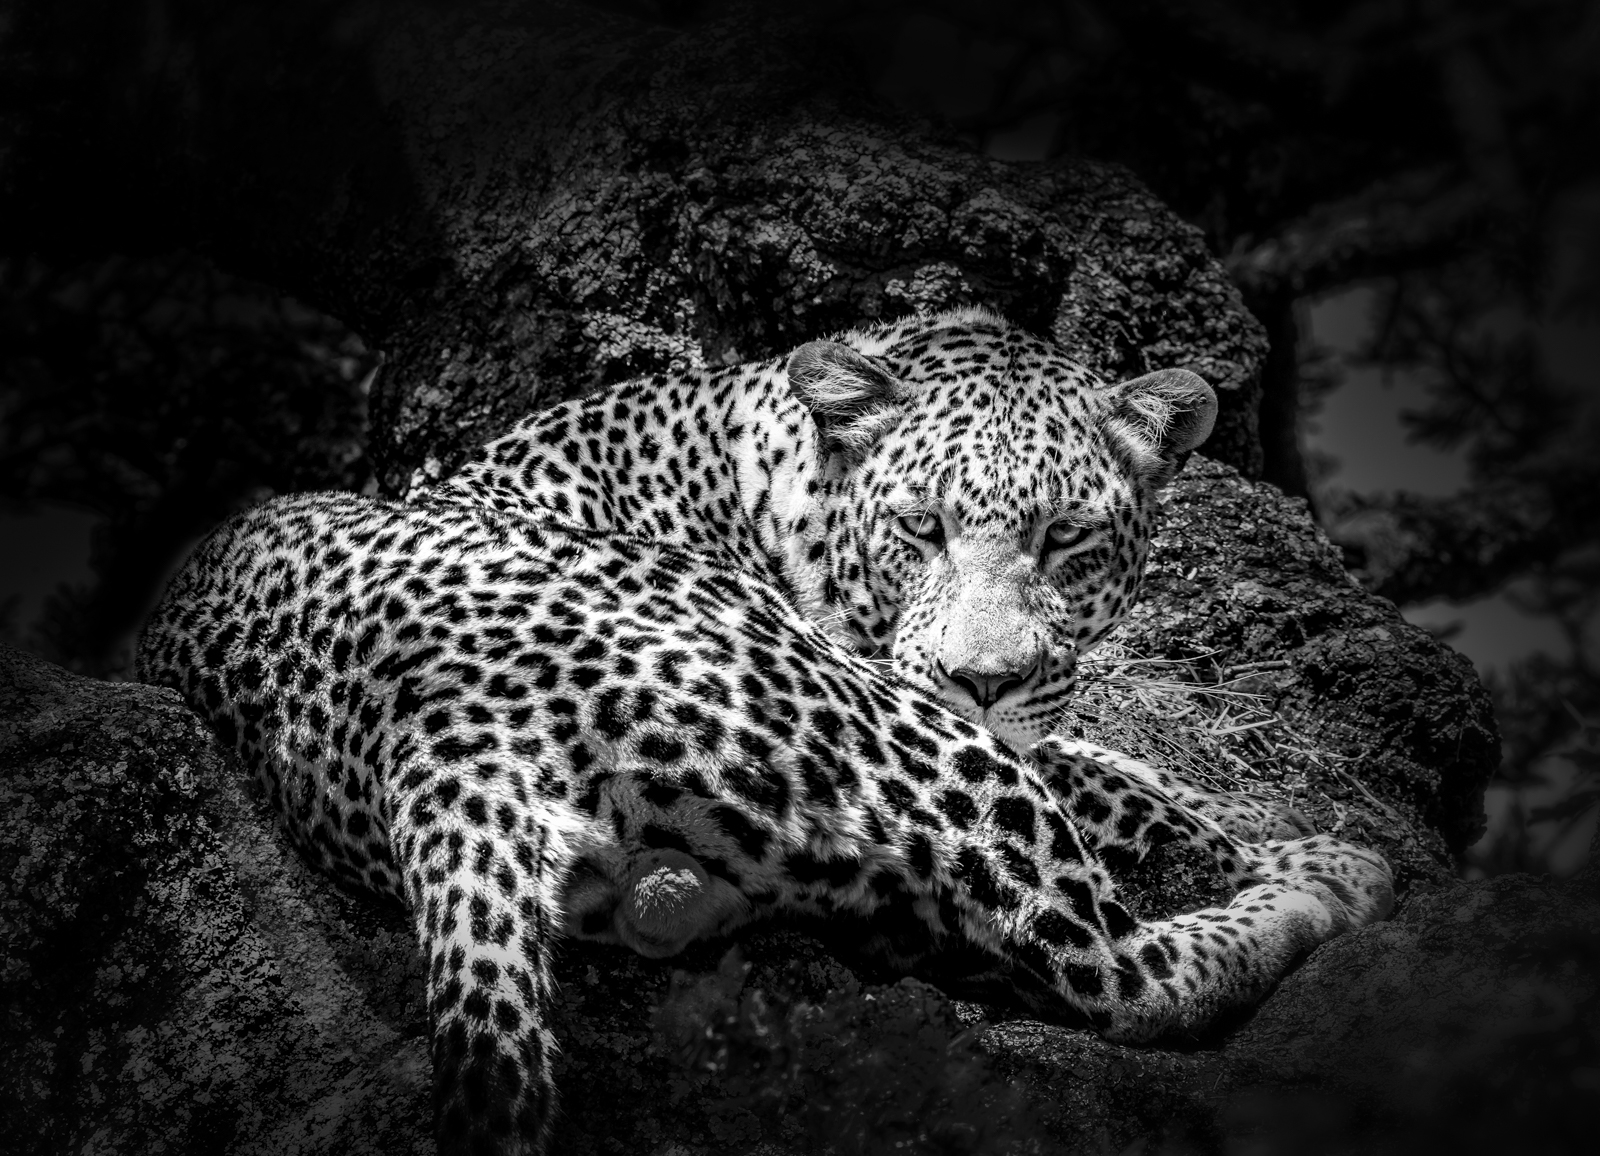 Julie_Eliason_Expressions_and_Impressions_Eyes_of_the_Leopard_02.jpg